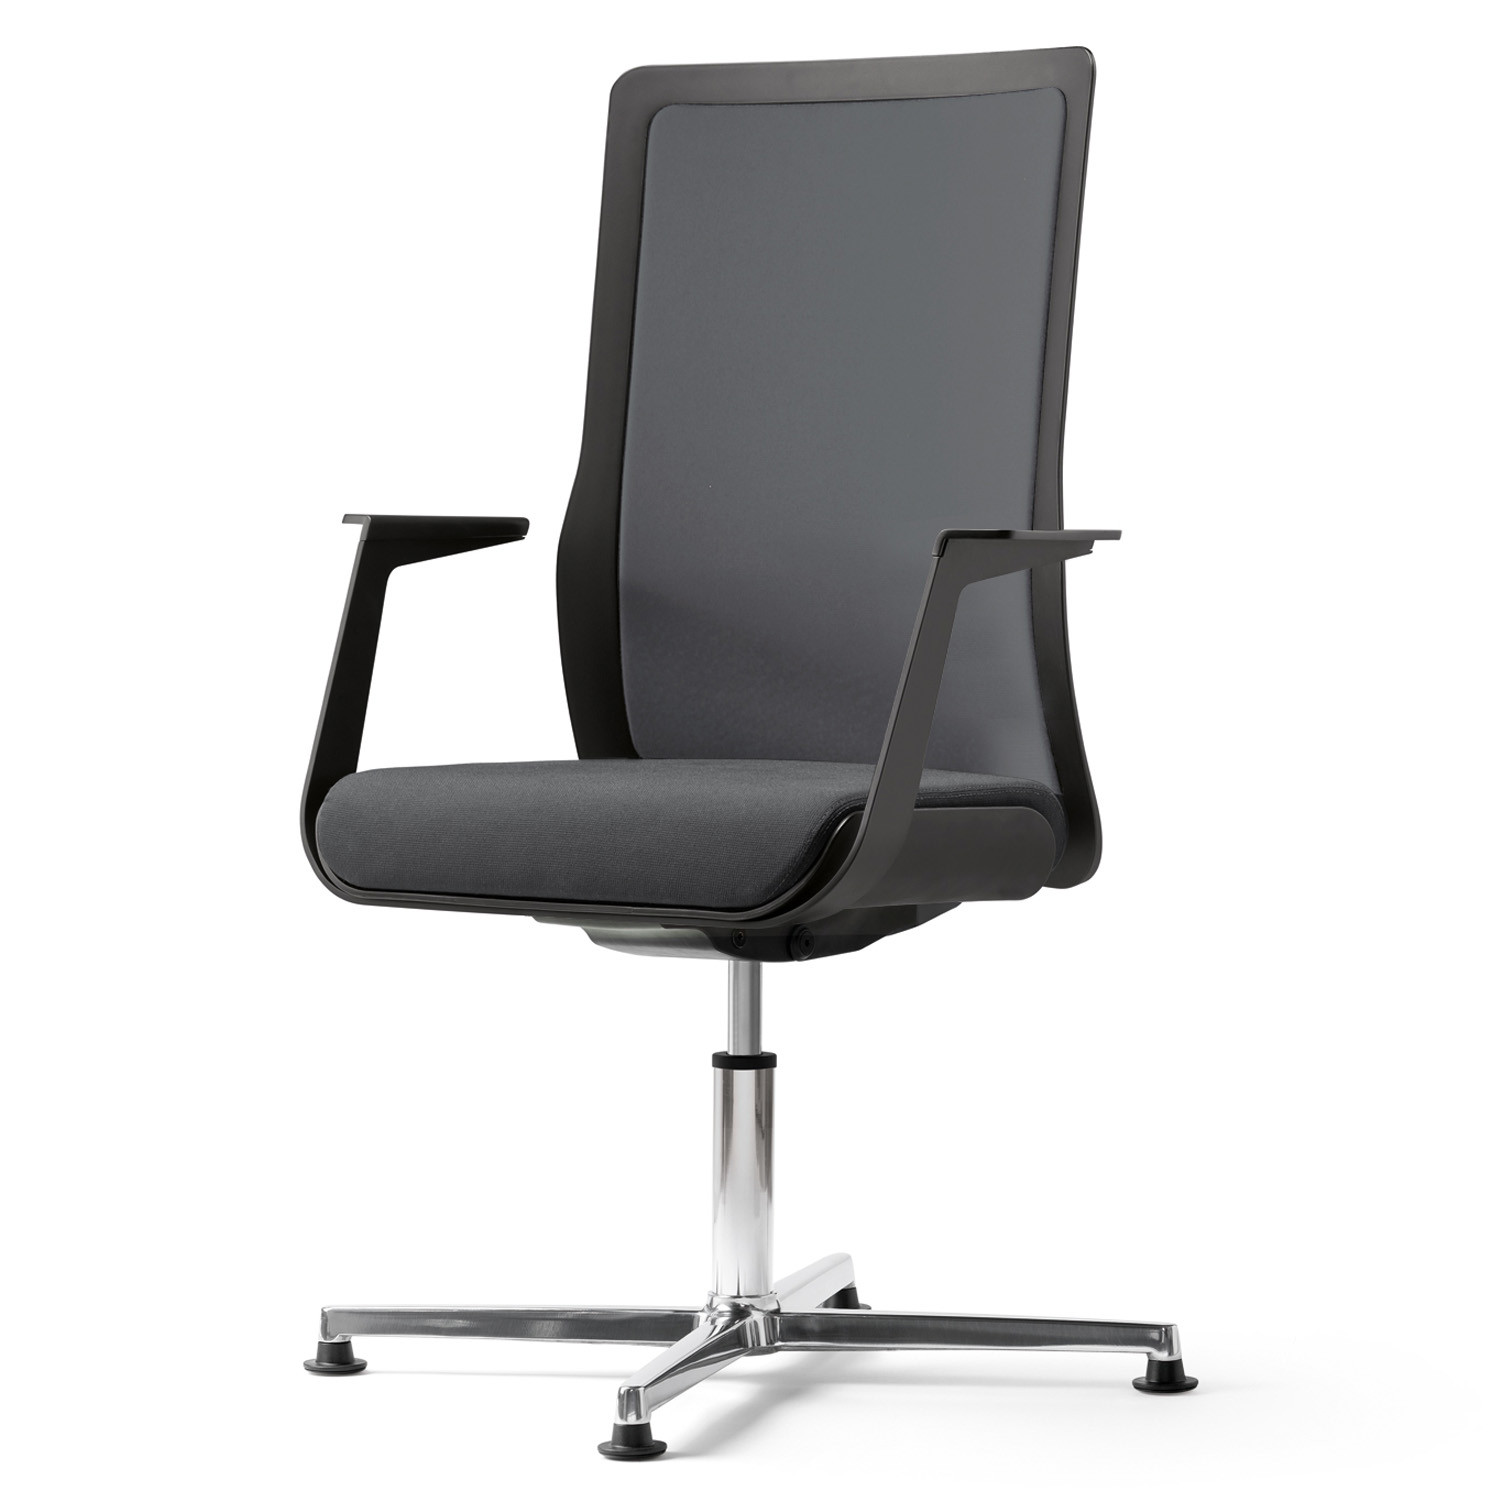 Poi Ergonomic Meeting Chair